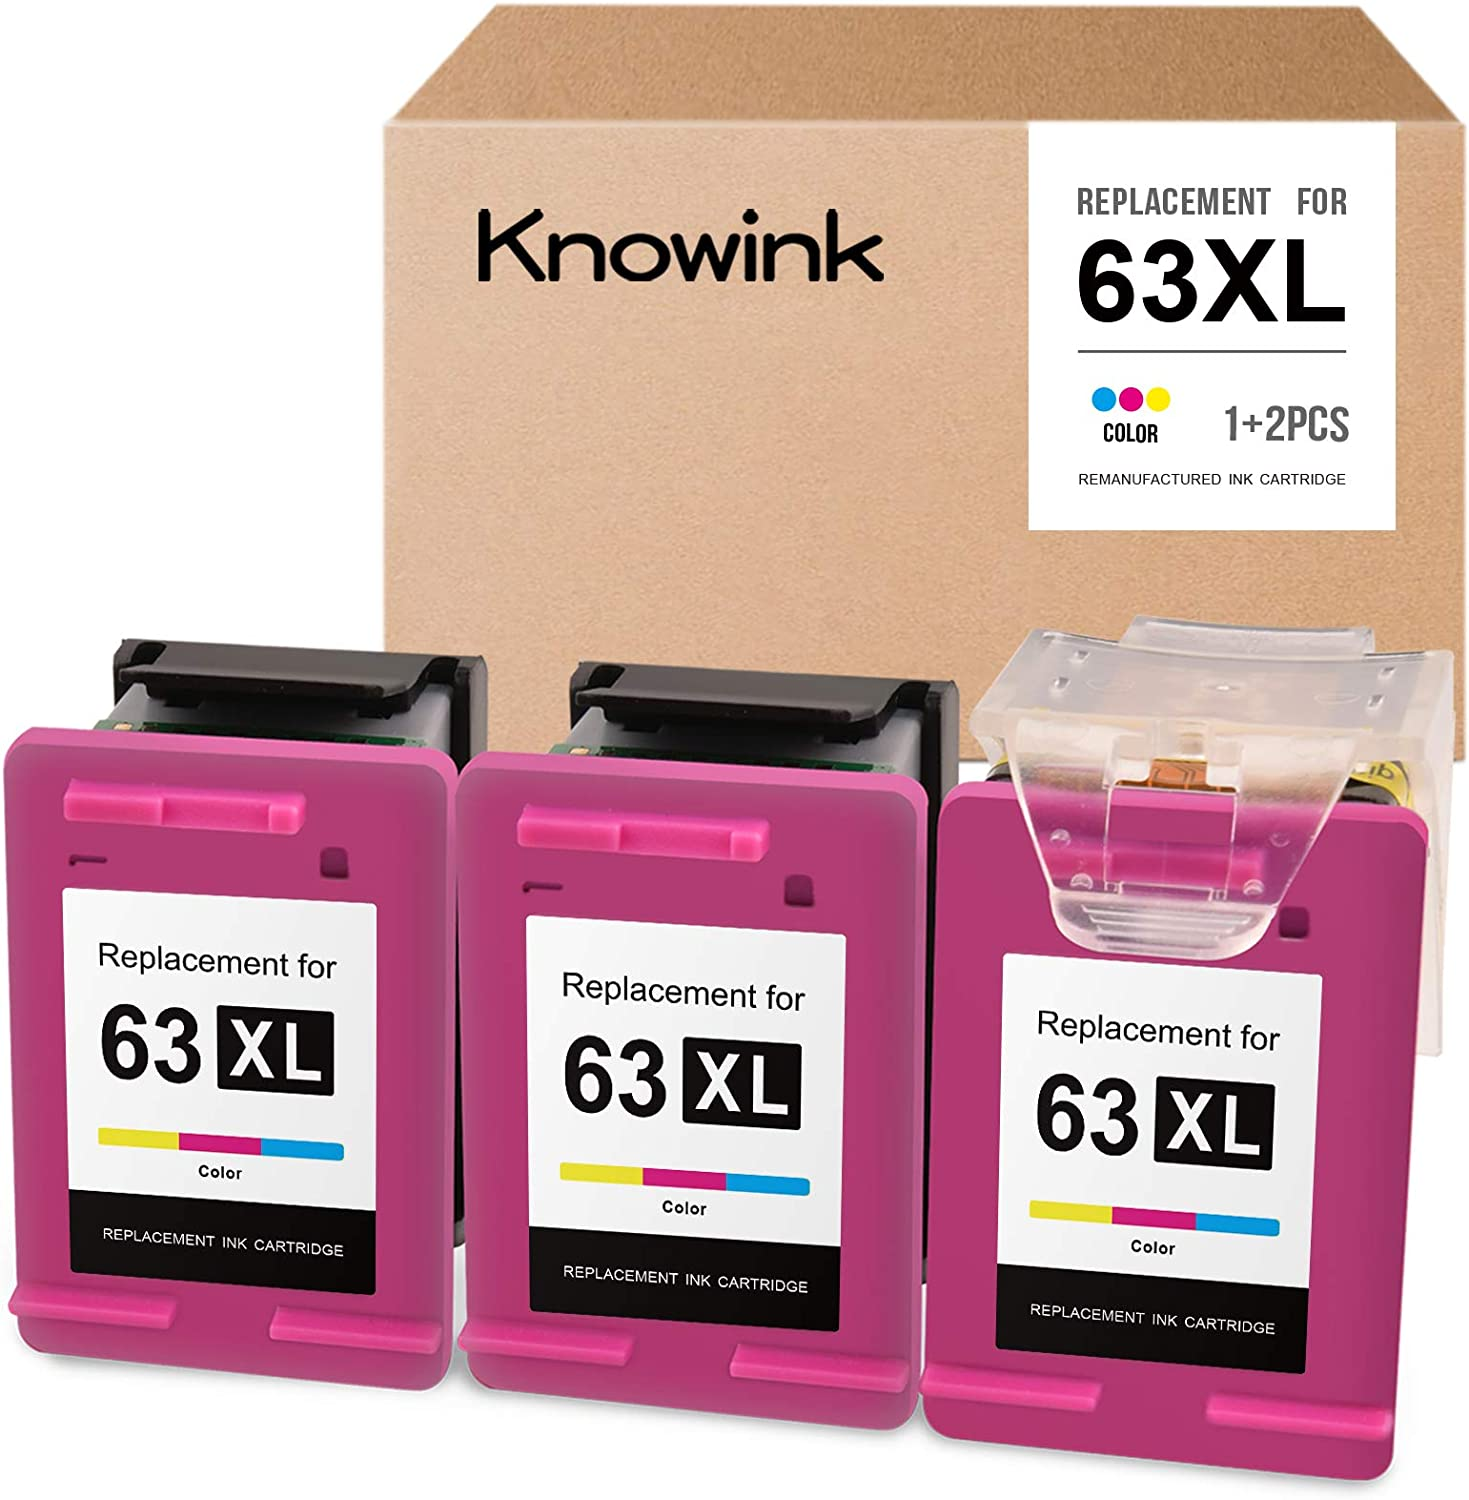 KNOWINK Remanufactured Ink Cartridge Replacement for HP 63 63XL ECO-Saver for OfficeJet 3830 4650 4652 4655 DeskJet 1110 1111 1112 2130 2132 3630 3632 Envy 4520 4512 4516 4520 4522 (3-Pack, Tri-color)